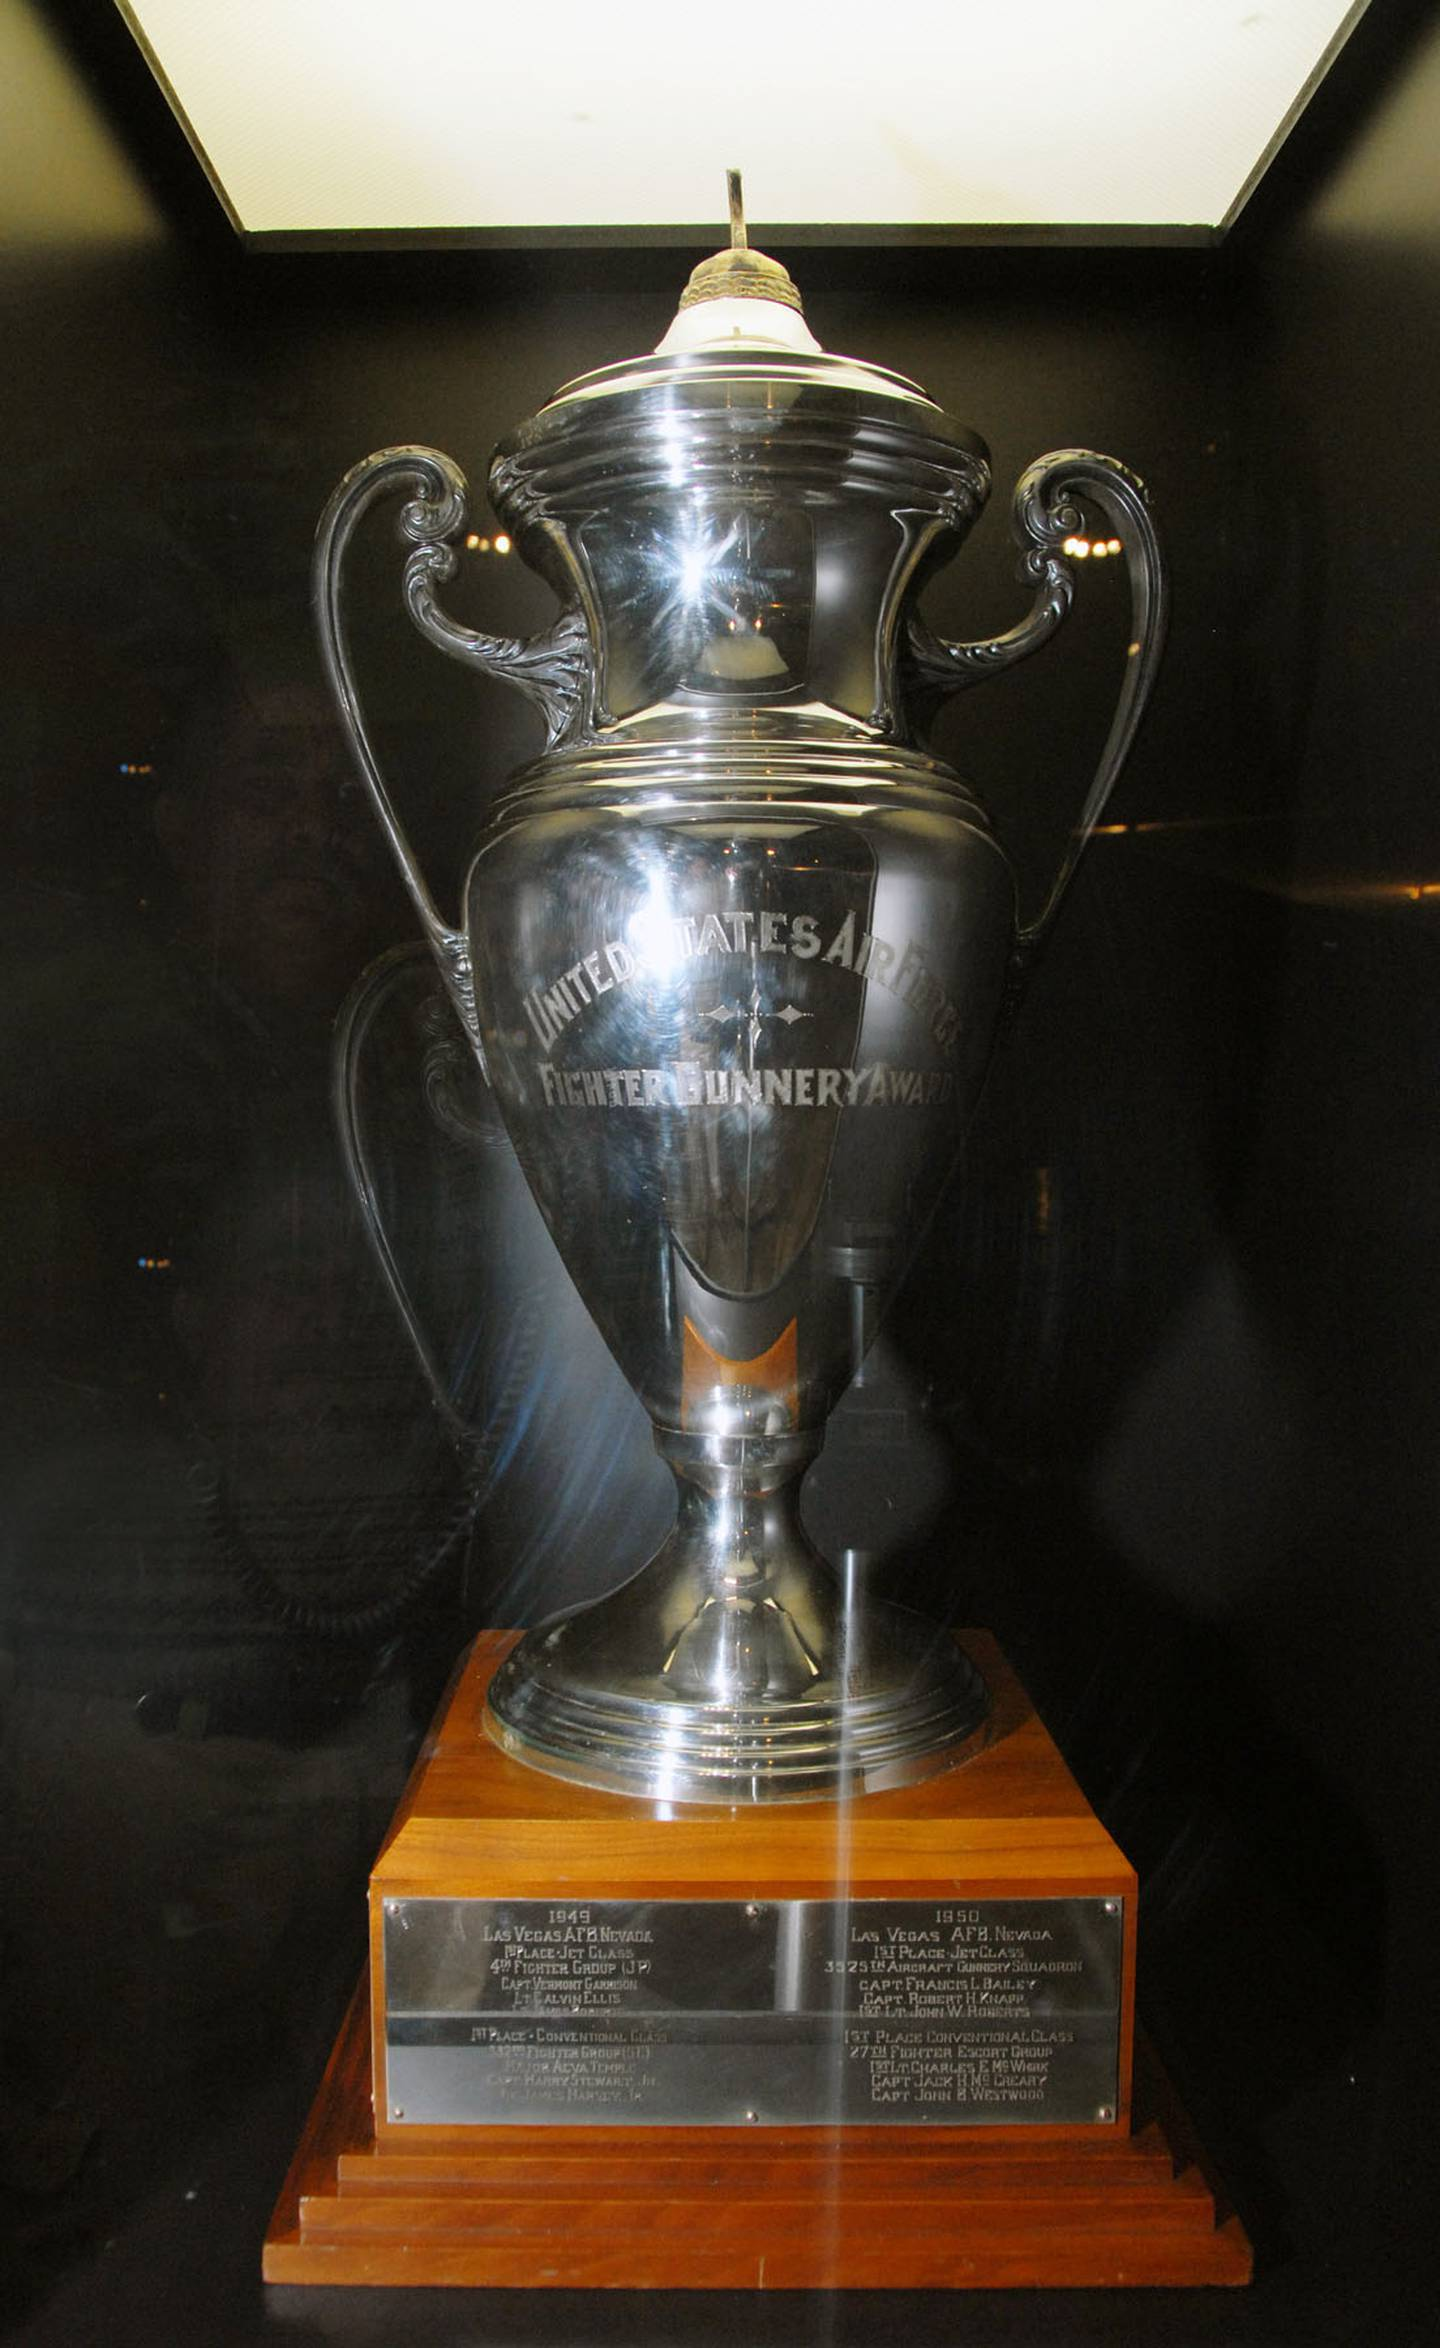 USAF Fighter Gunnery Competition Trophy on display in the World War II Gallery at the National Museum of the U.S. Air Force. (U.S. Air Force photo)